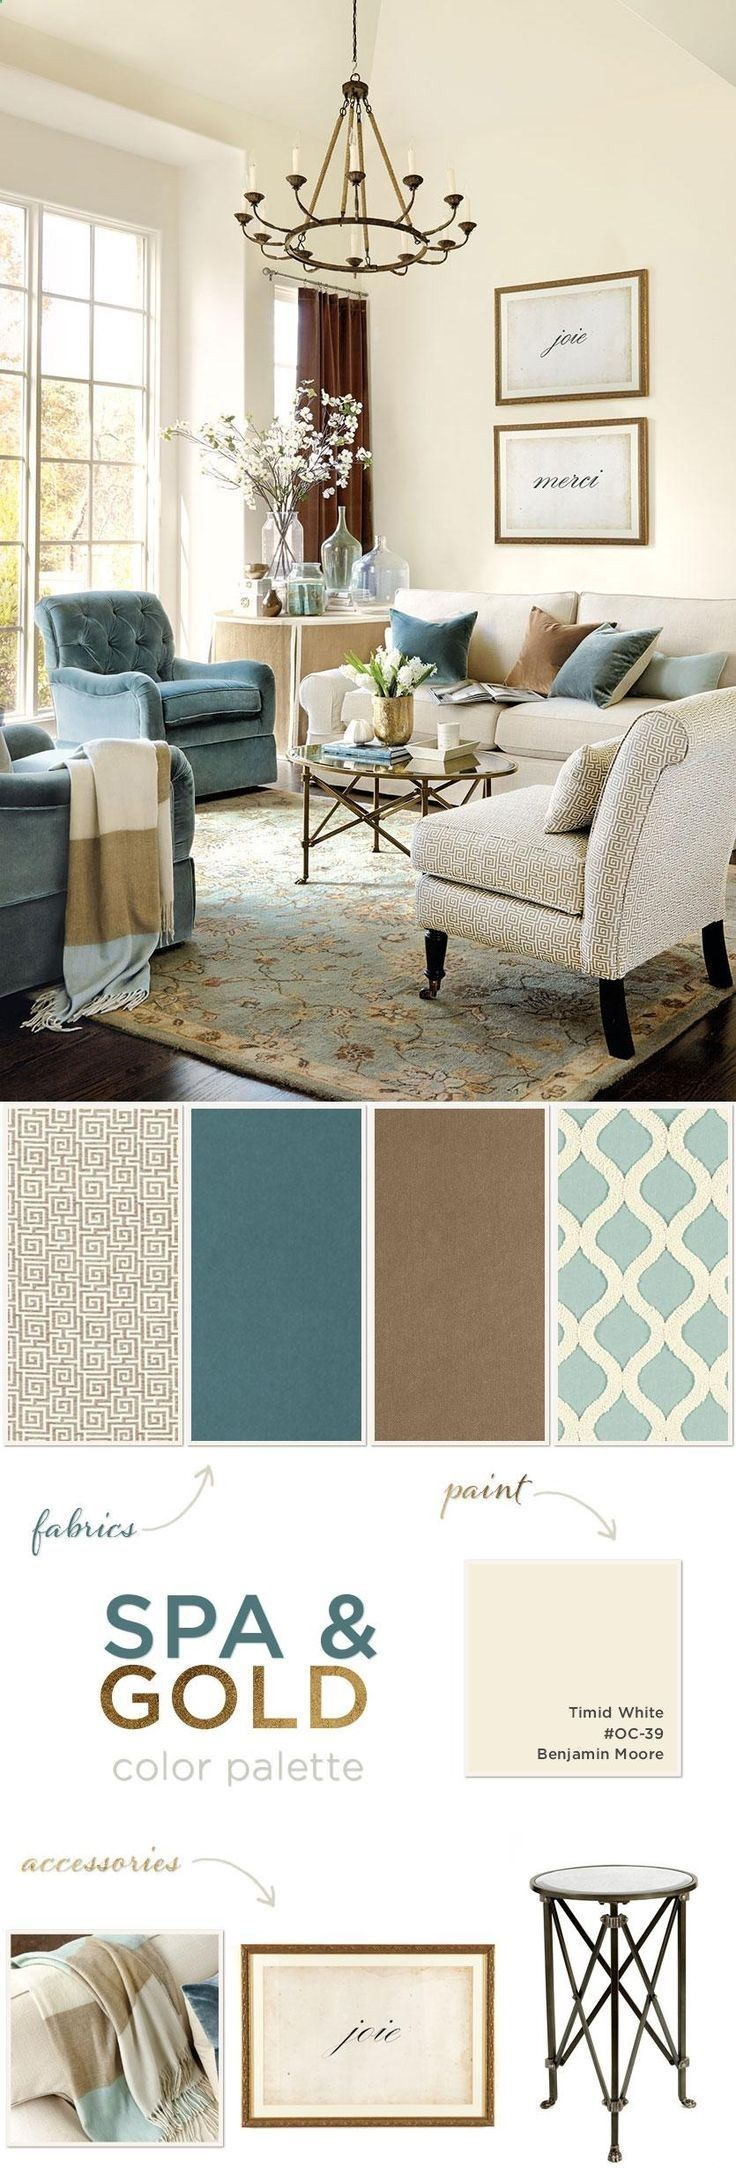 Perfect Gold Gives Spa Blue A Cozy, Warmth~ Color Palette For Formal Living Dining!